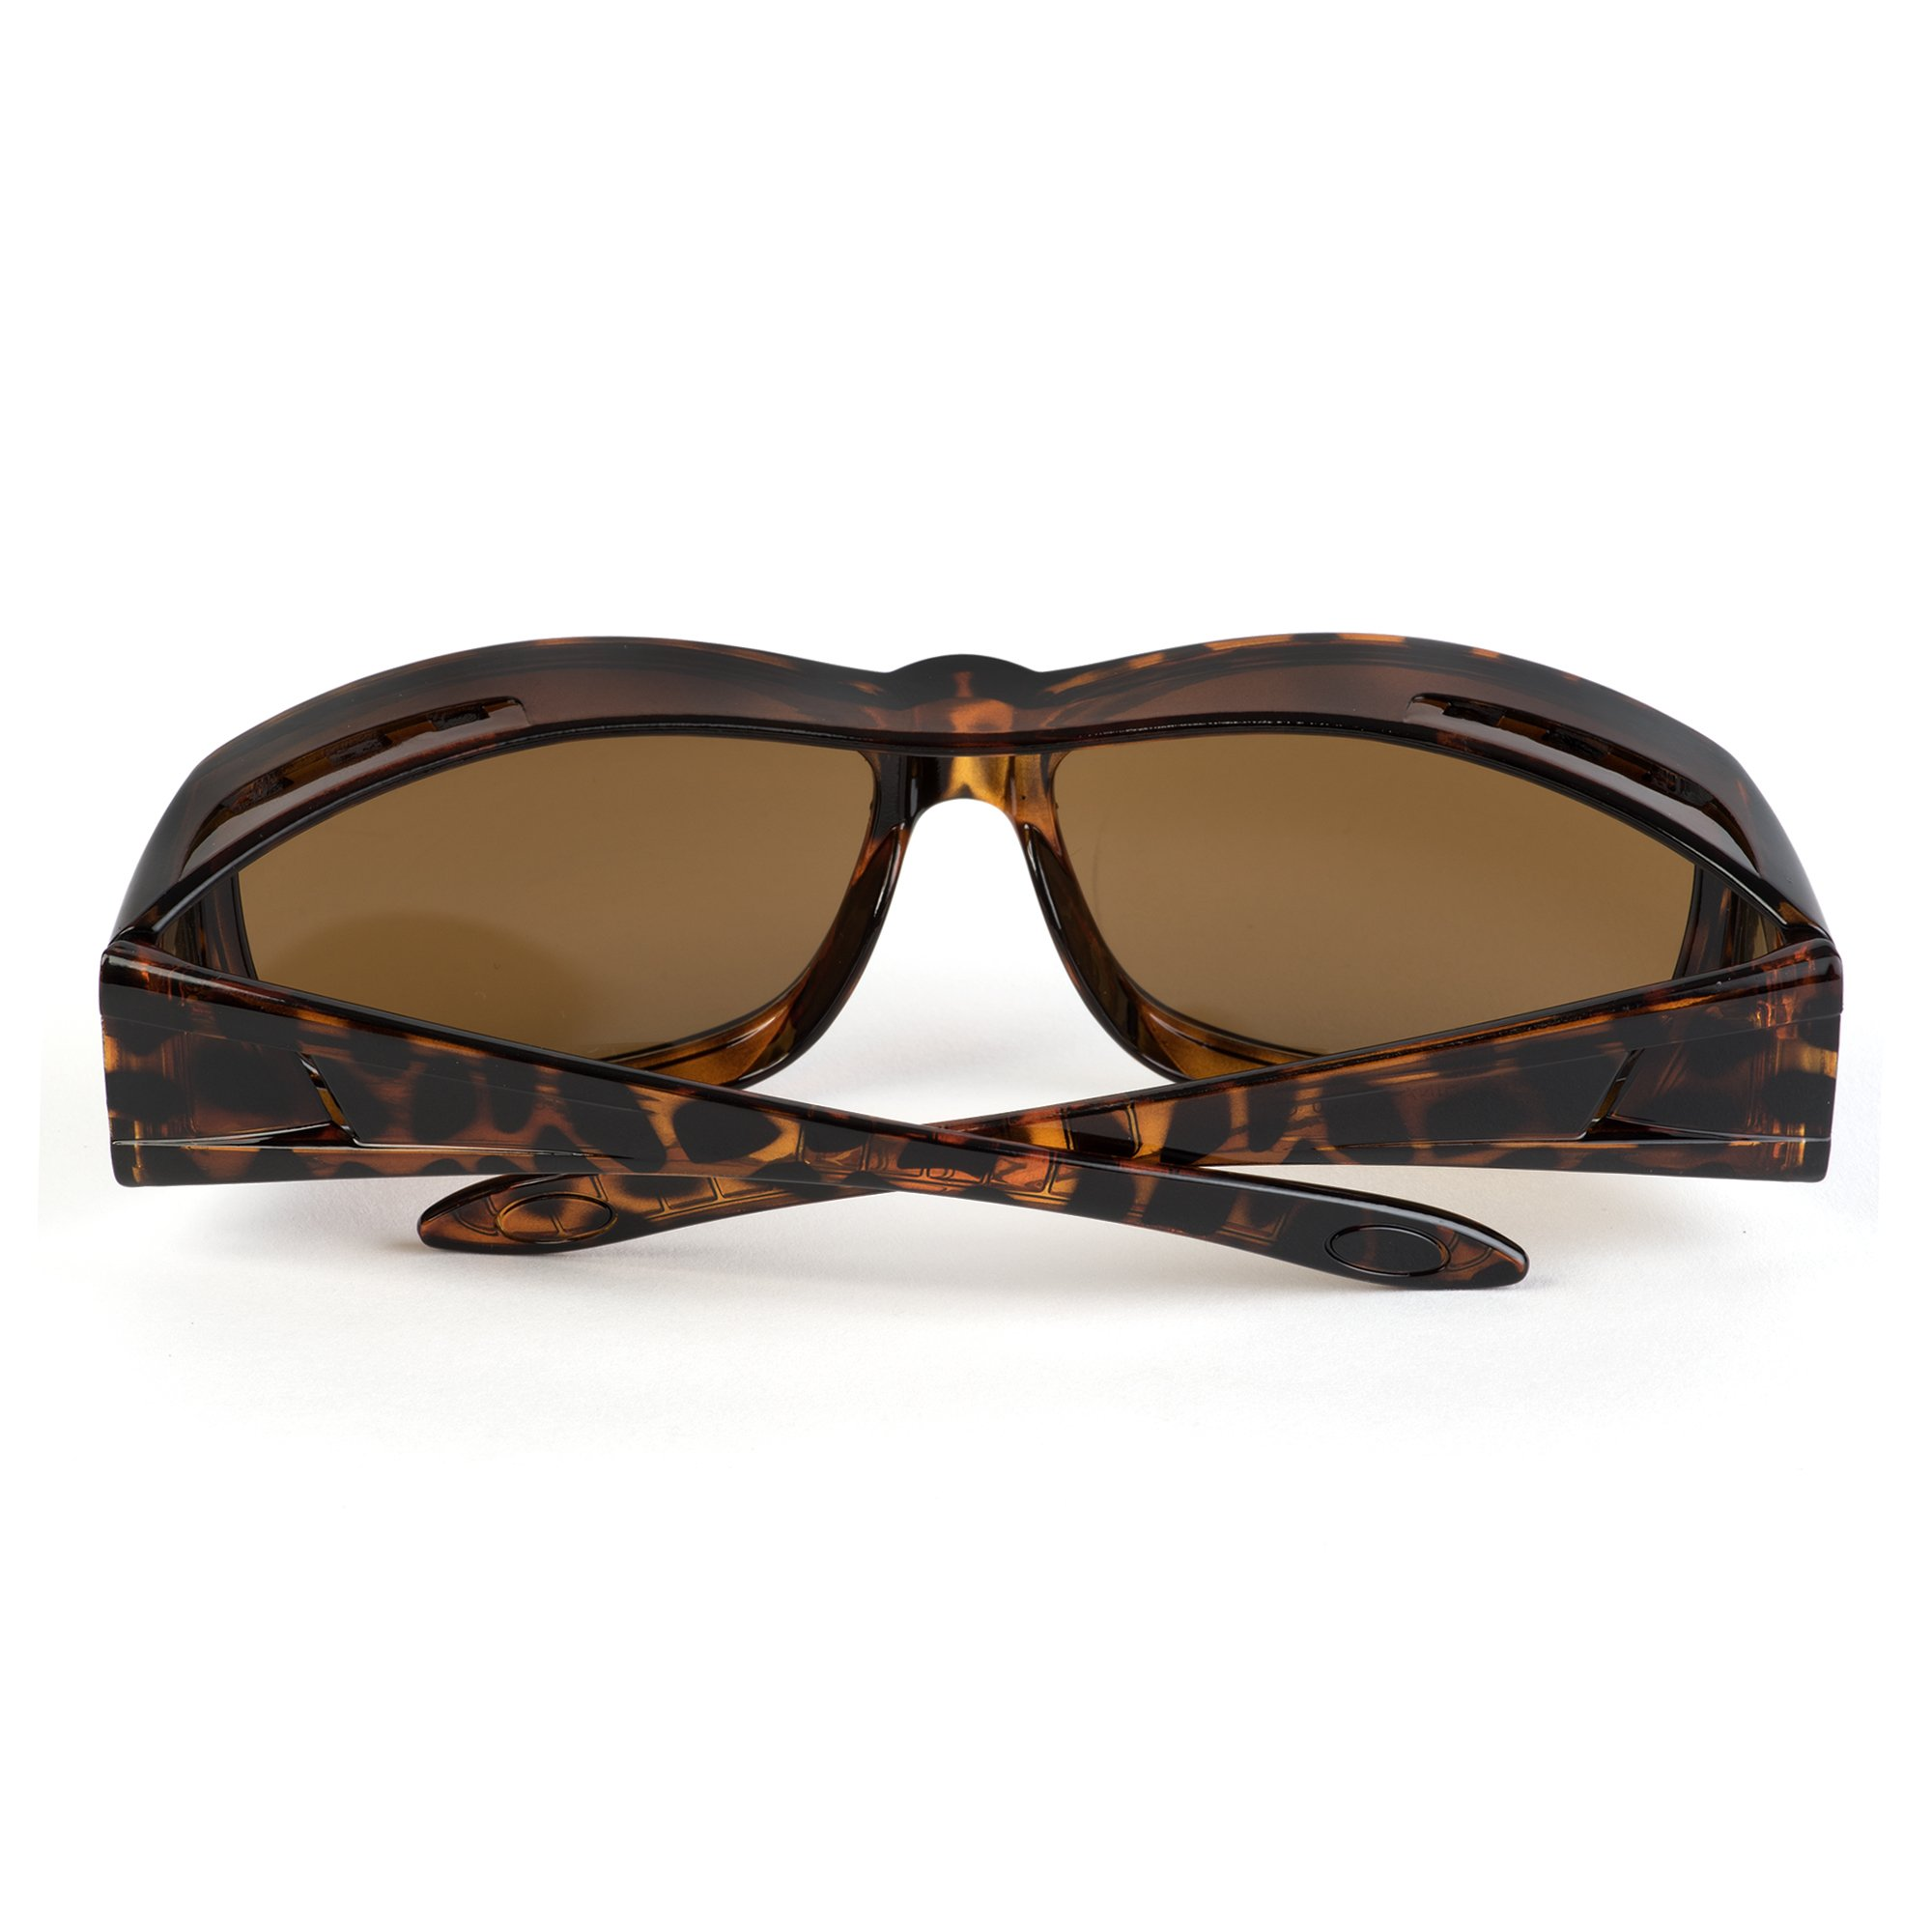 Over Glasses Sunglasses - Fitover Sunglasses with 100% UV Protection - By Pointed Designs (Leopard) by Pointed Designs (Image #6)